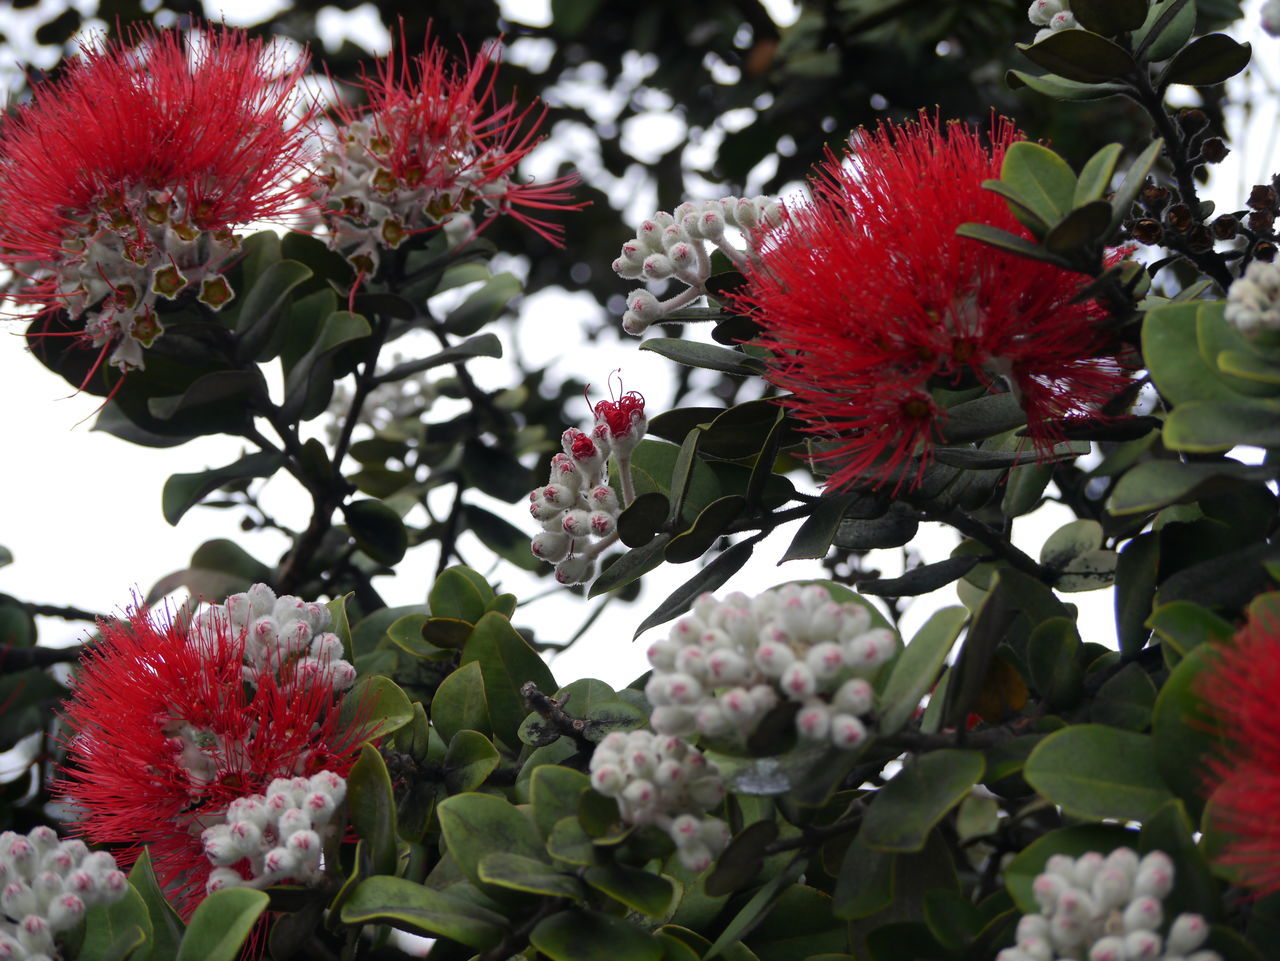 flower, red, growth, nature, beauty in nature, freshness, no people, fragility, petal, flower head, day, outdoors, plant, blooming, close-up, tree